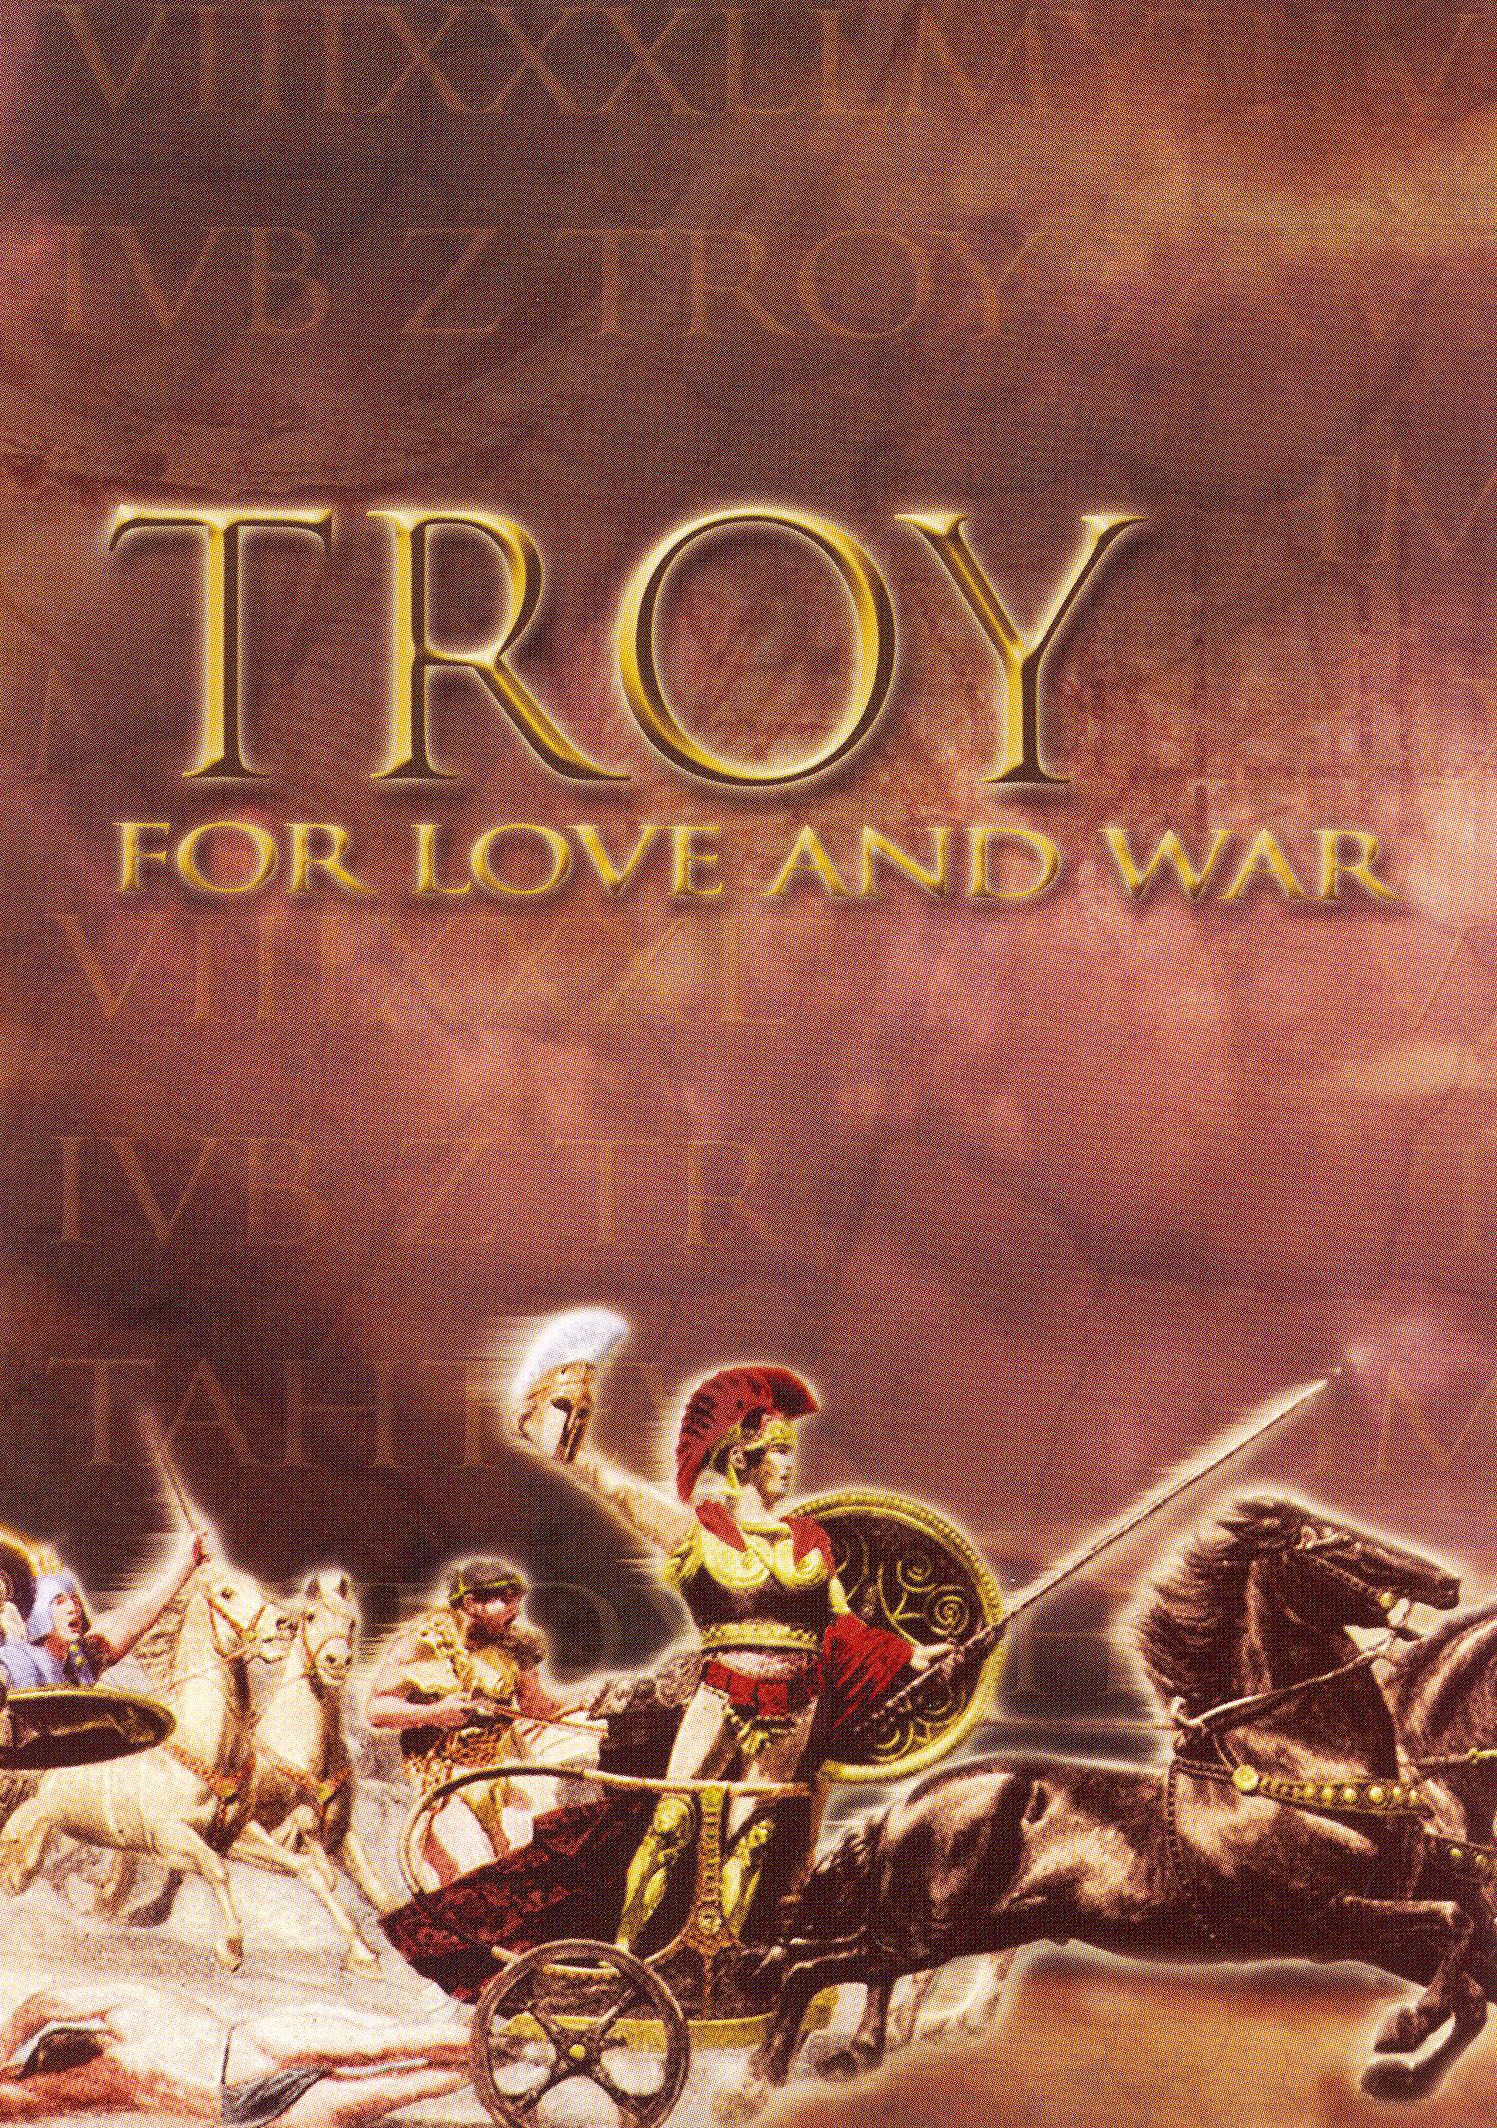 Troy: For Love and War